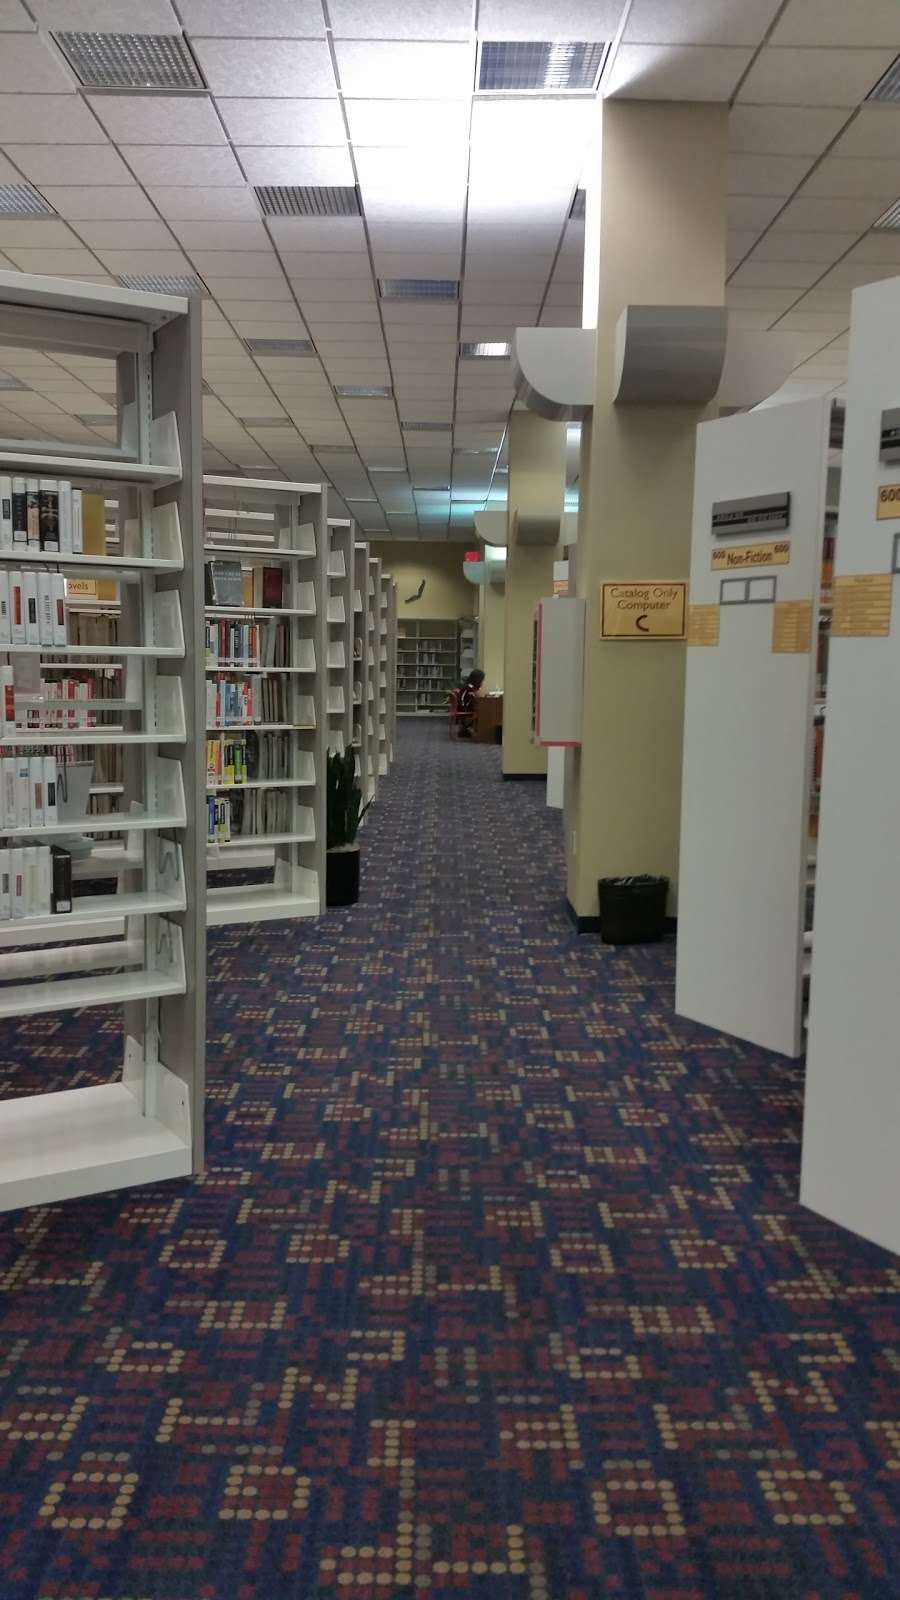 Sterling Municipal Library - library  | Photo 6 of 9 | Address: 4258, 1 Mary Elizabeth Wilbanks Ave, Baytown, TX 77520, USA | Phone: (281) 427-7331